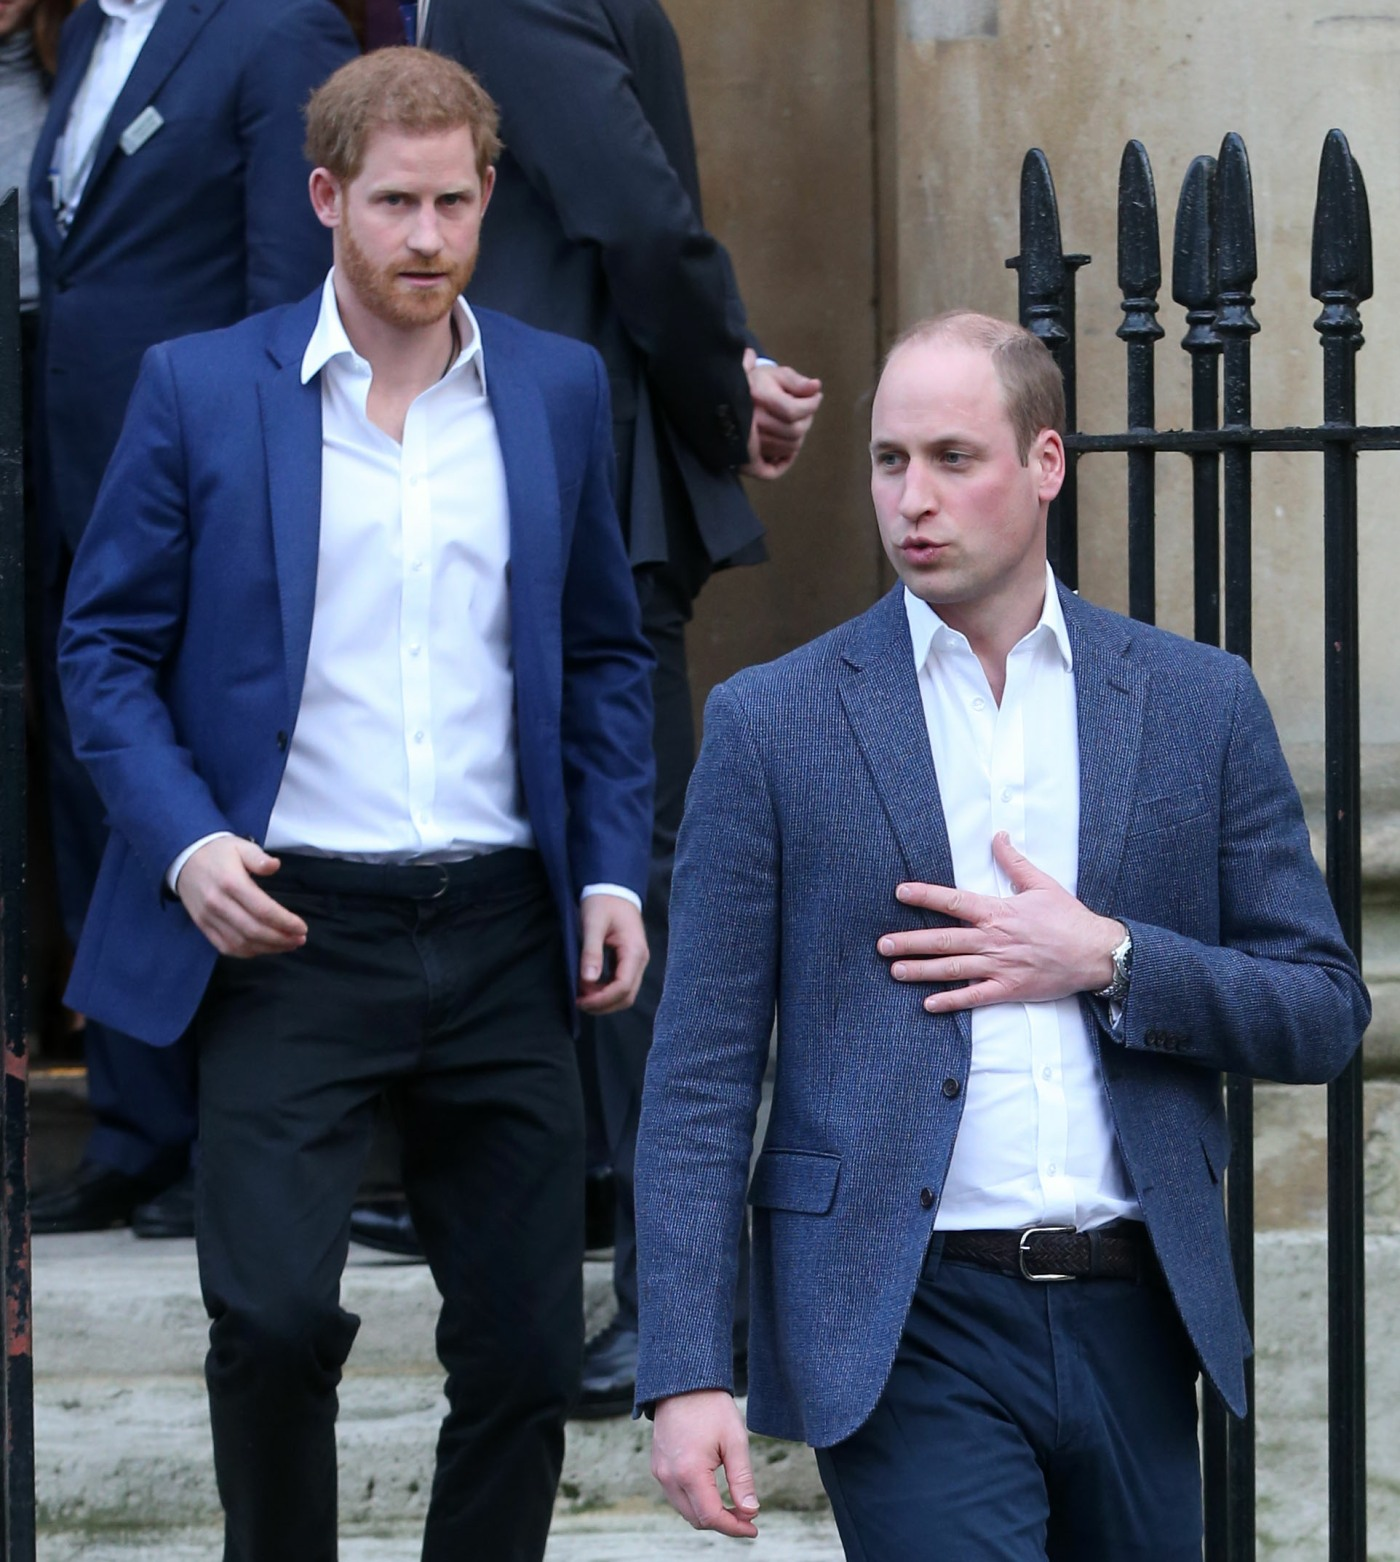 Prince William feels 'compassion' for the Sussexes, he's spoken to Harry